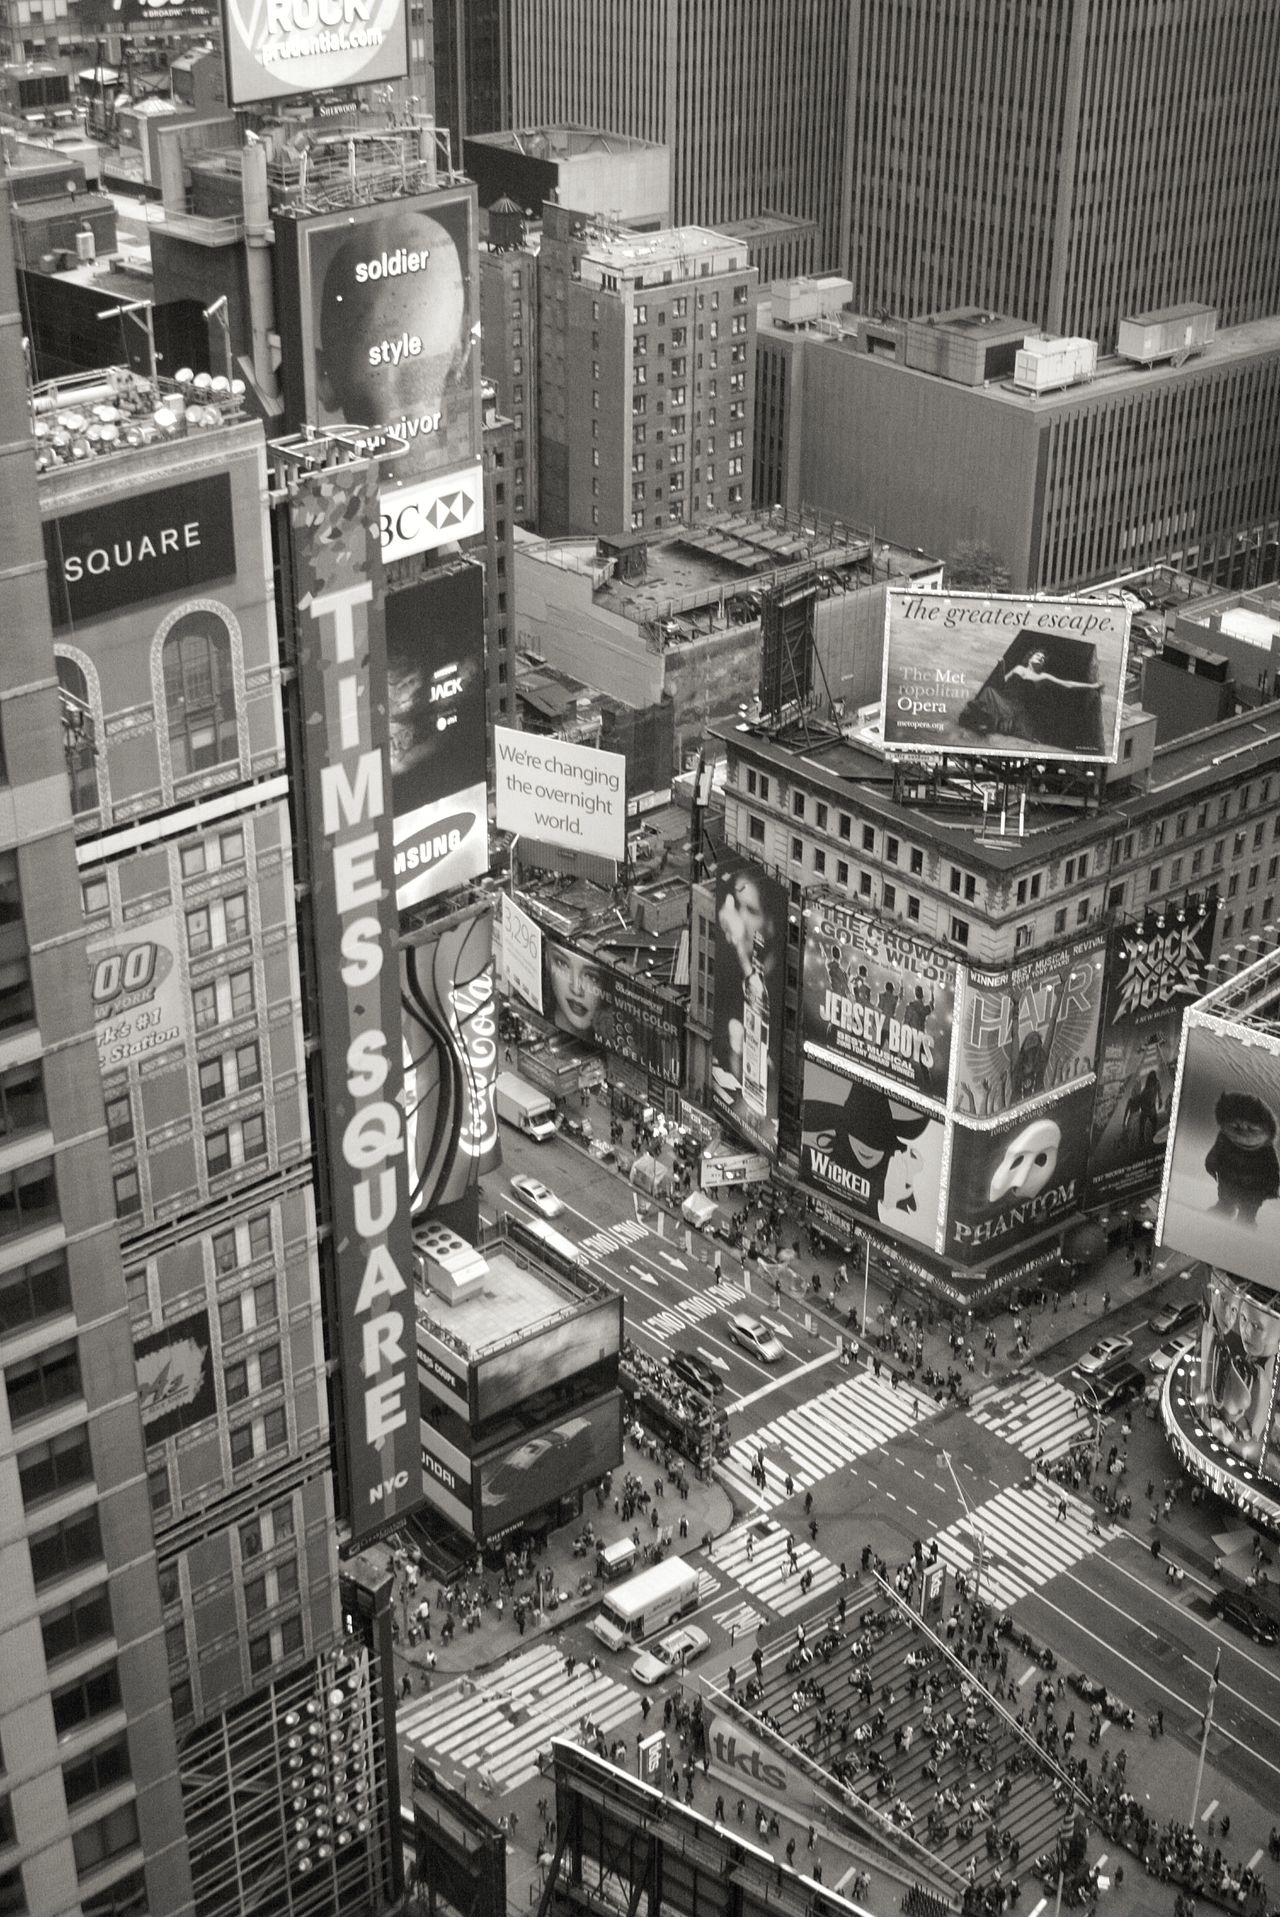 Times Square from the 34th floor of the Marriott Marquis hotel in Times Square, New York City. 9th October 2009. Times Square New York City Marriott Marquis Looking Down The Big Apple Black & White Theatre Billboards I Love New York New York In Monochrome